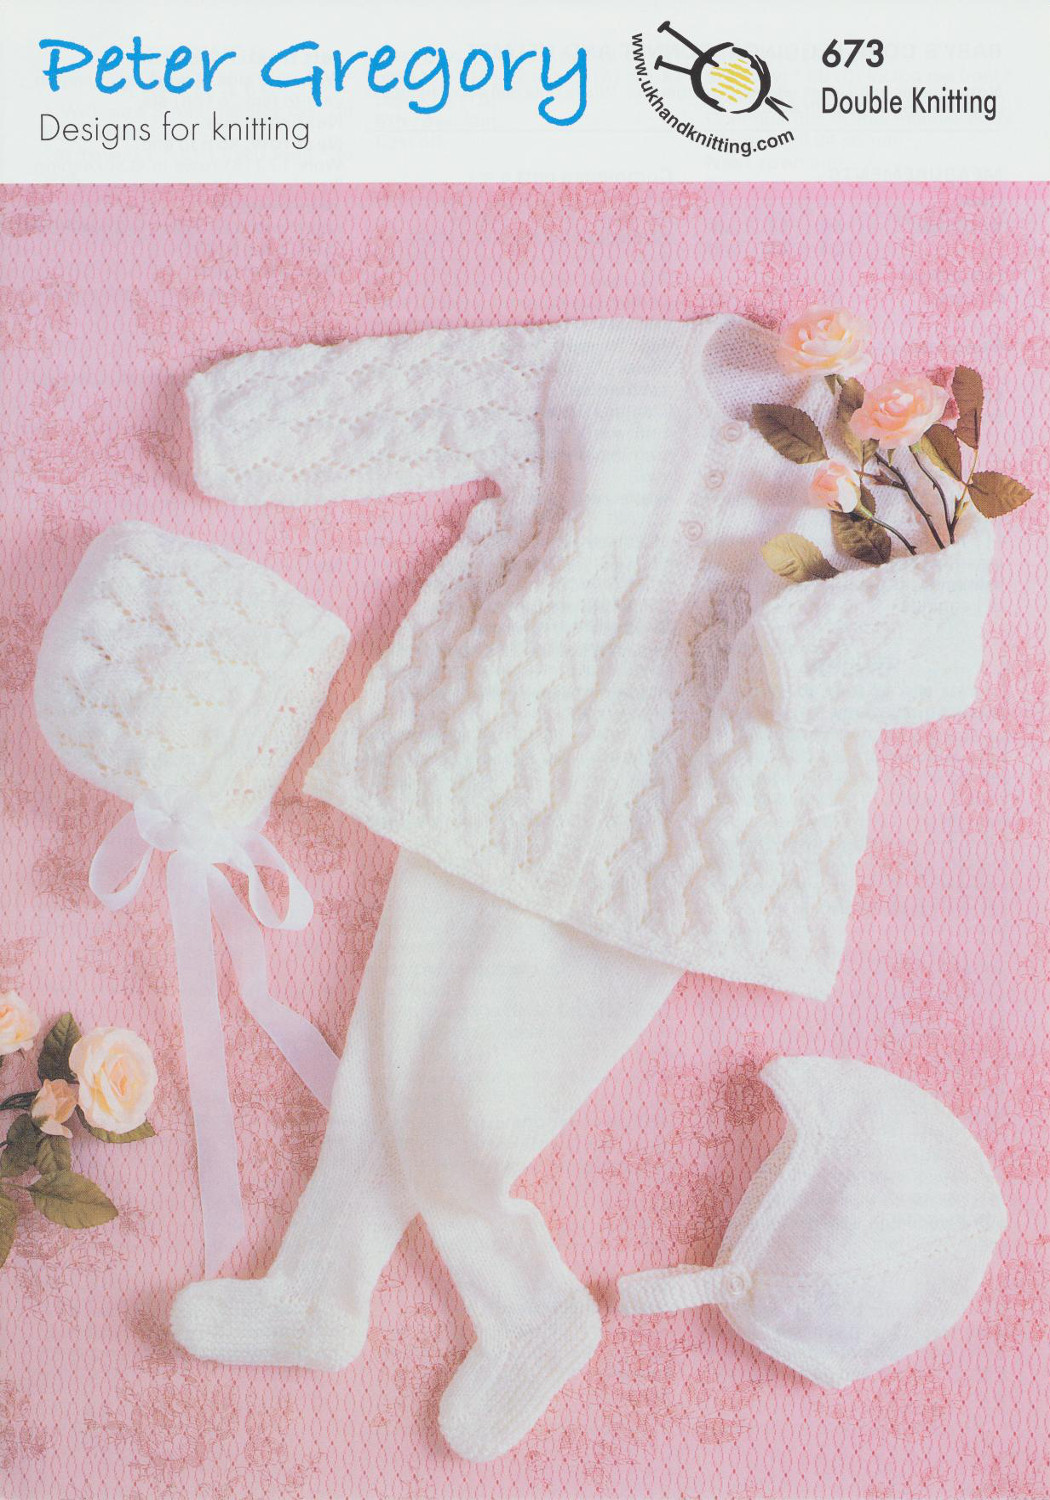 Scarves Knitting Patterns Free : Baby Double Knitting Pattern Coat Coat Leggings Accessories Peter Gregory DK ...